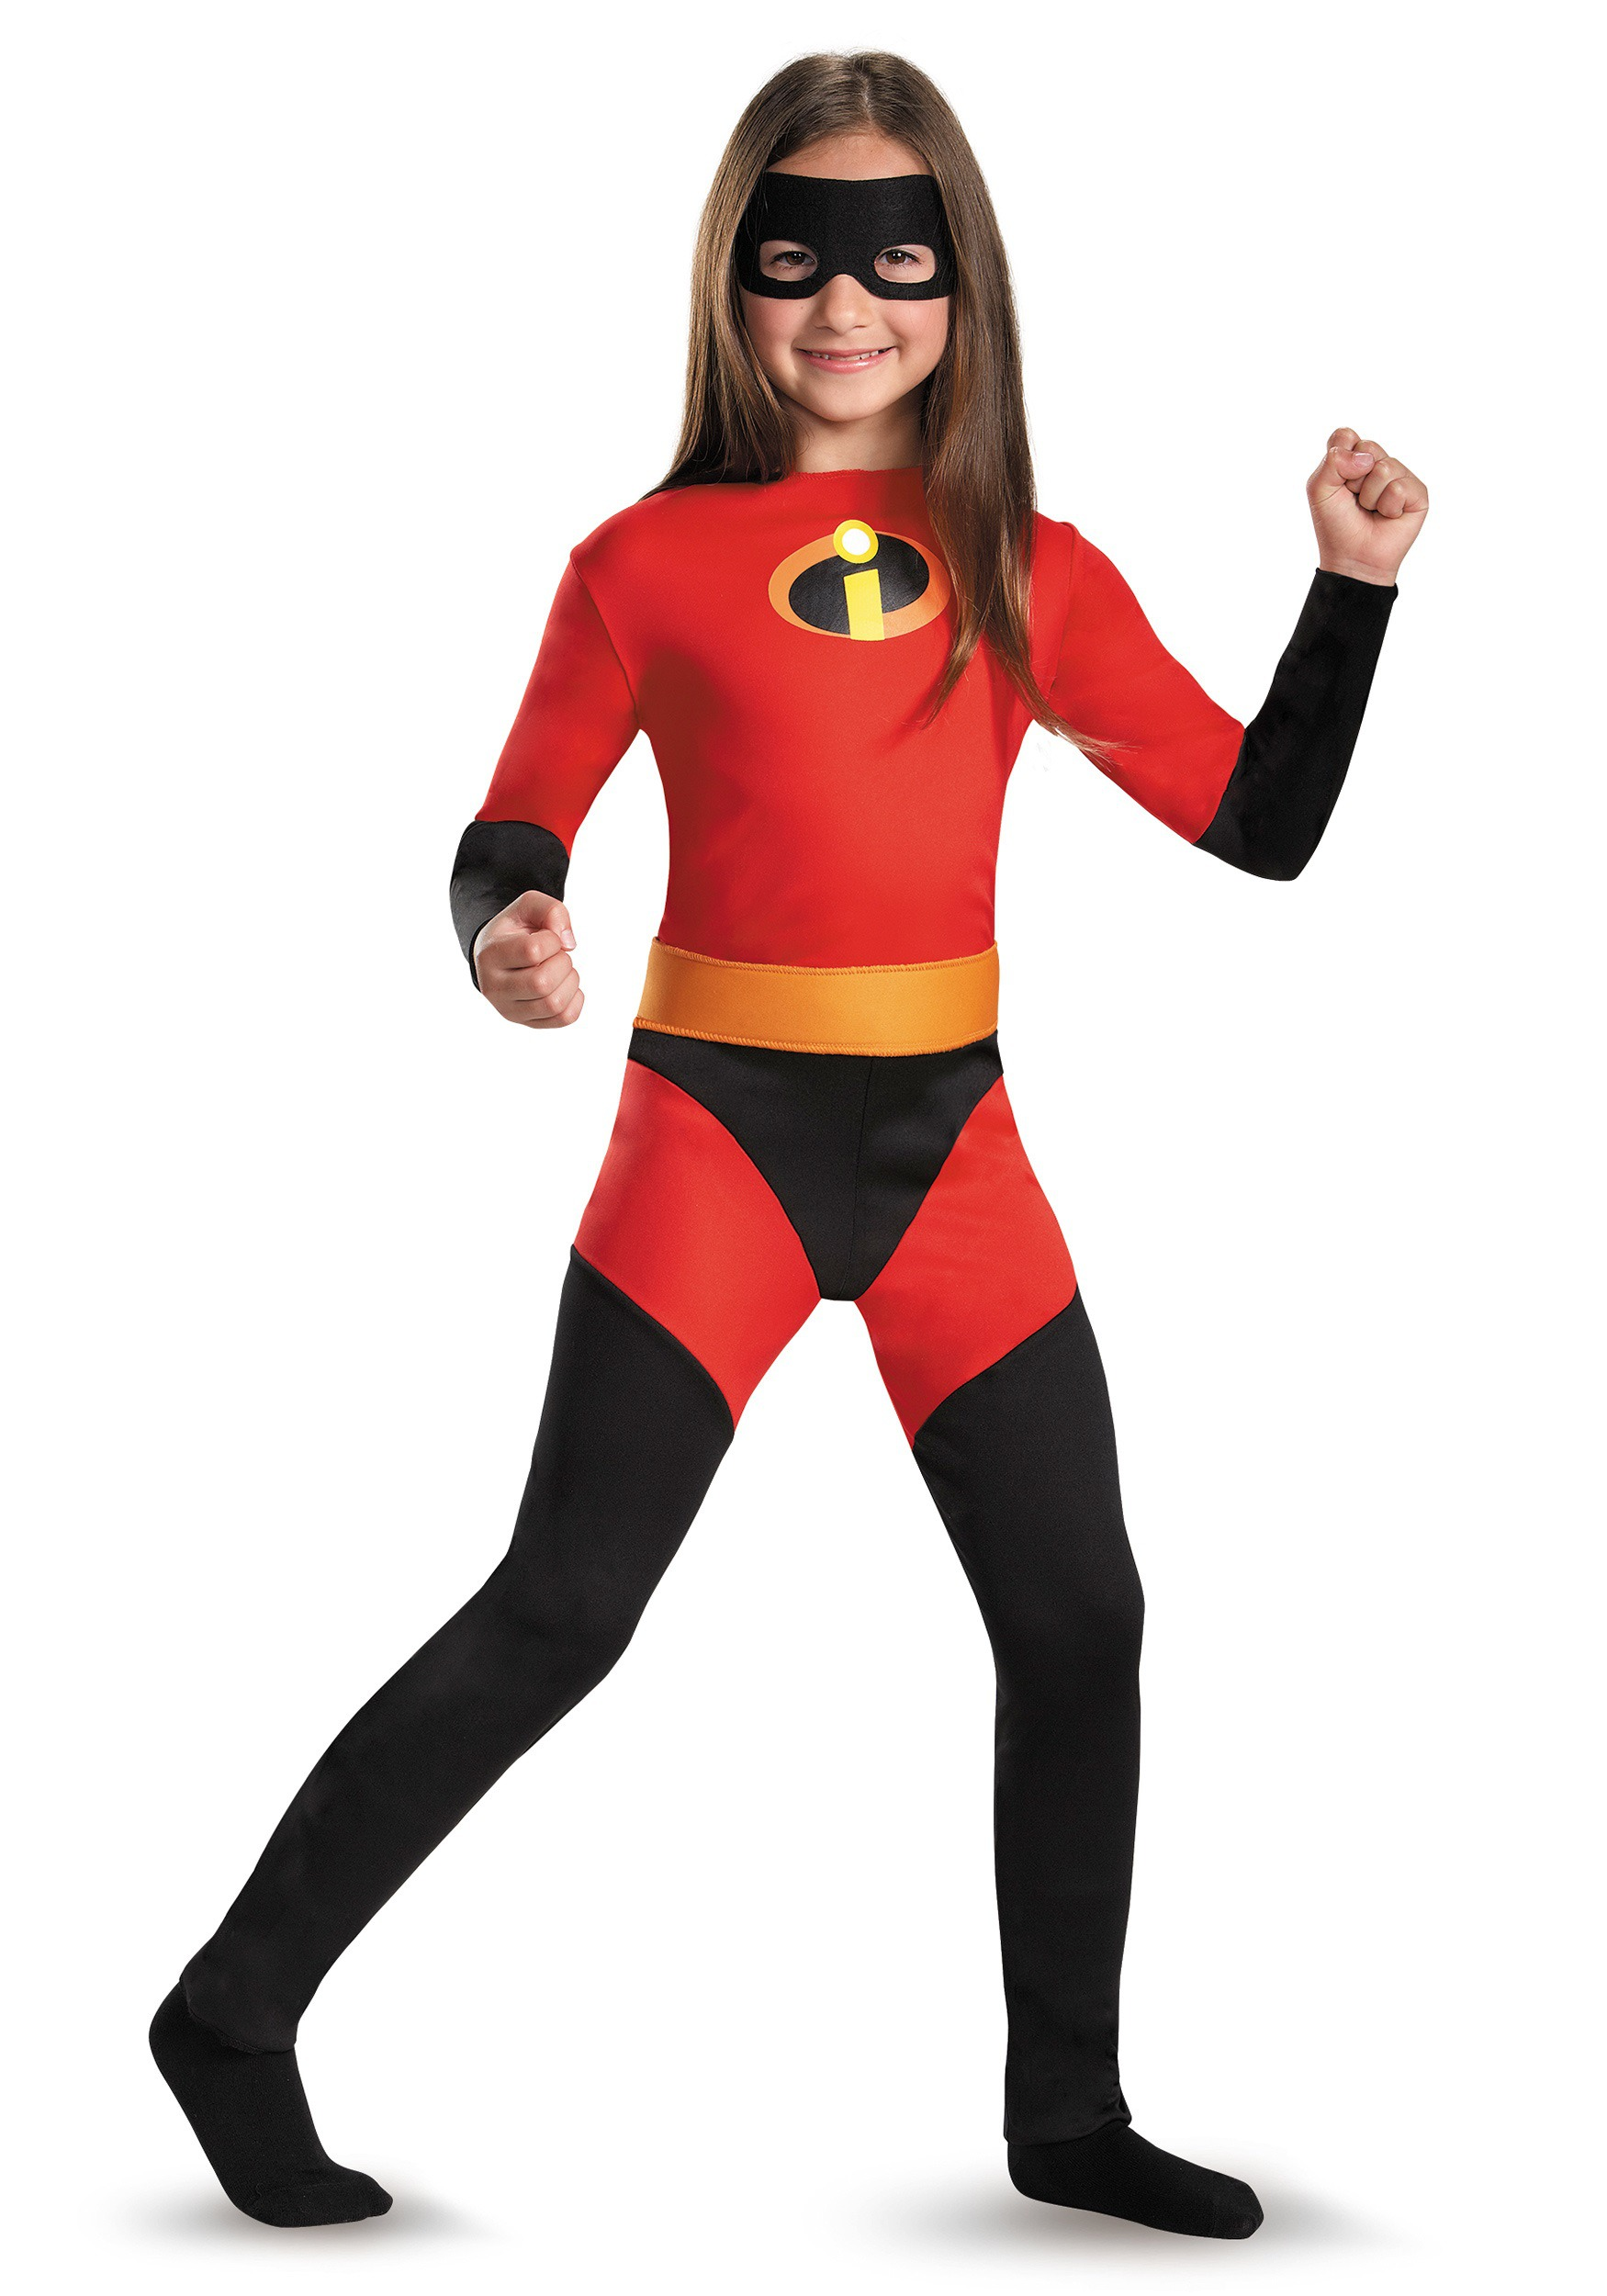 Kids Violet Incredible Costume  sc 1 st  Halloween Costumes & Girls Superhero Costumes - Child Teen Girls Superhero Costumes